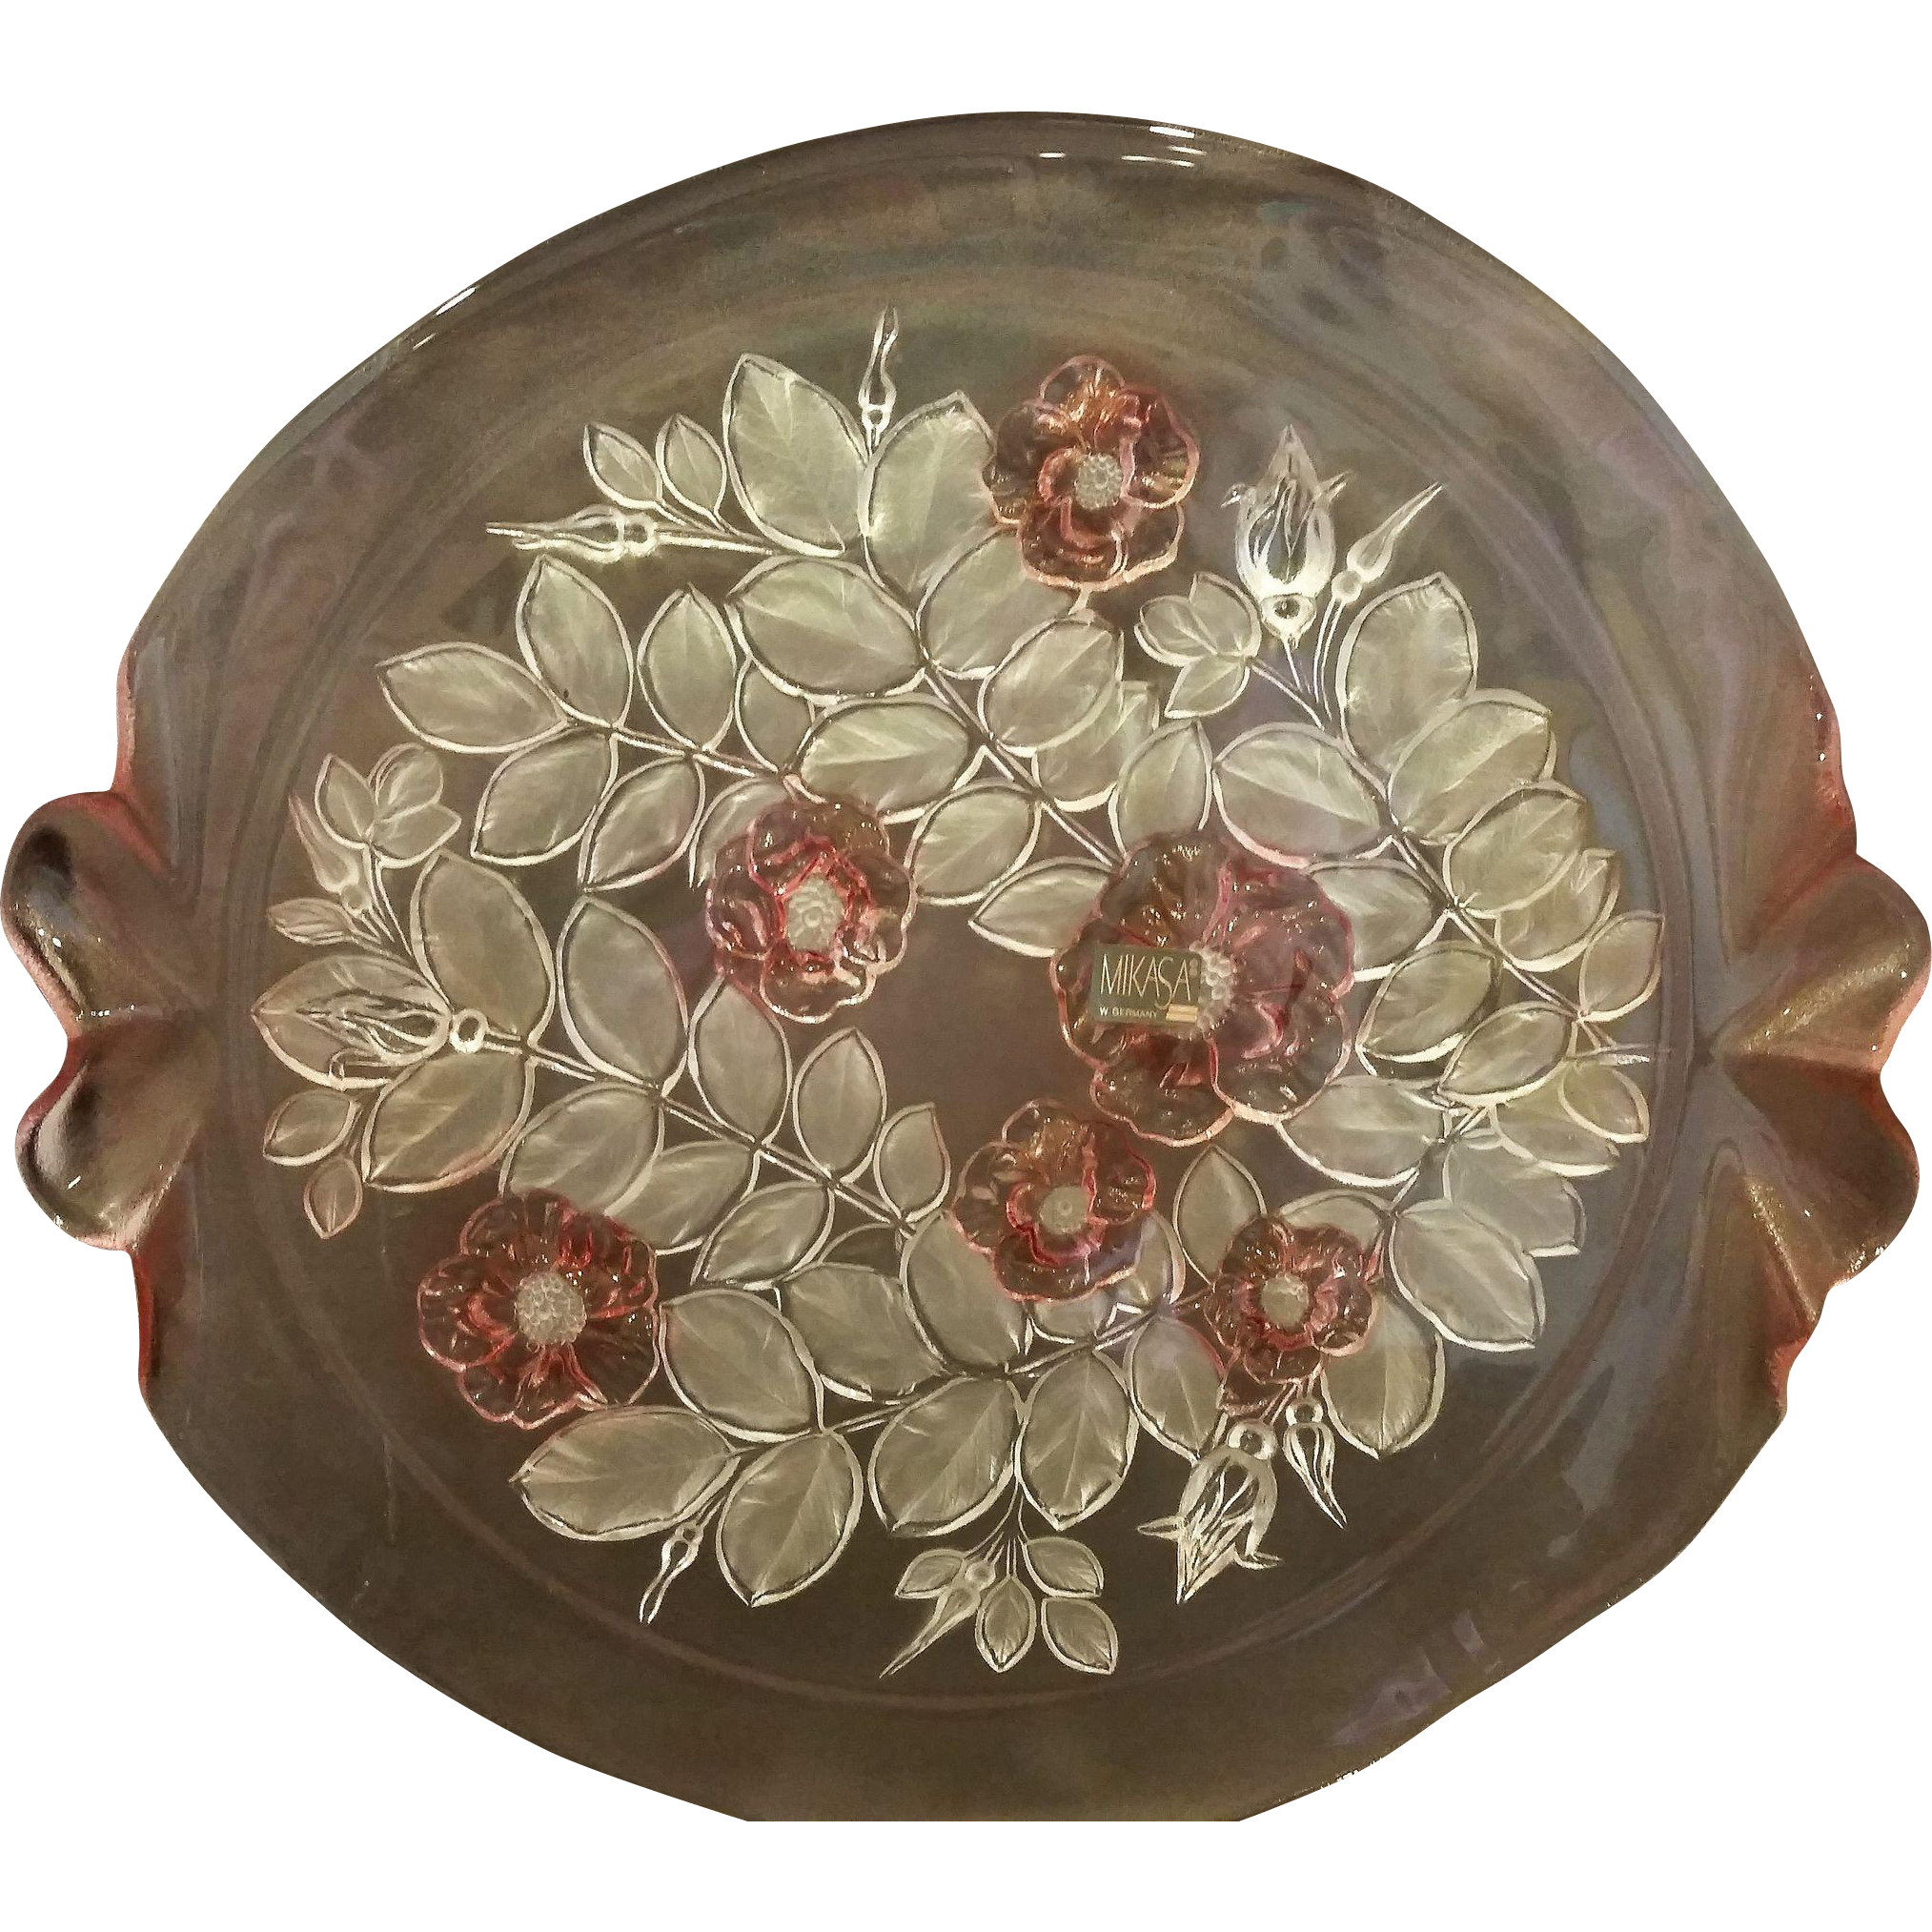 Mikasa Rosella Walther Crystal Germany Pink Flowers Cake Plate Tab Handles